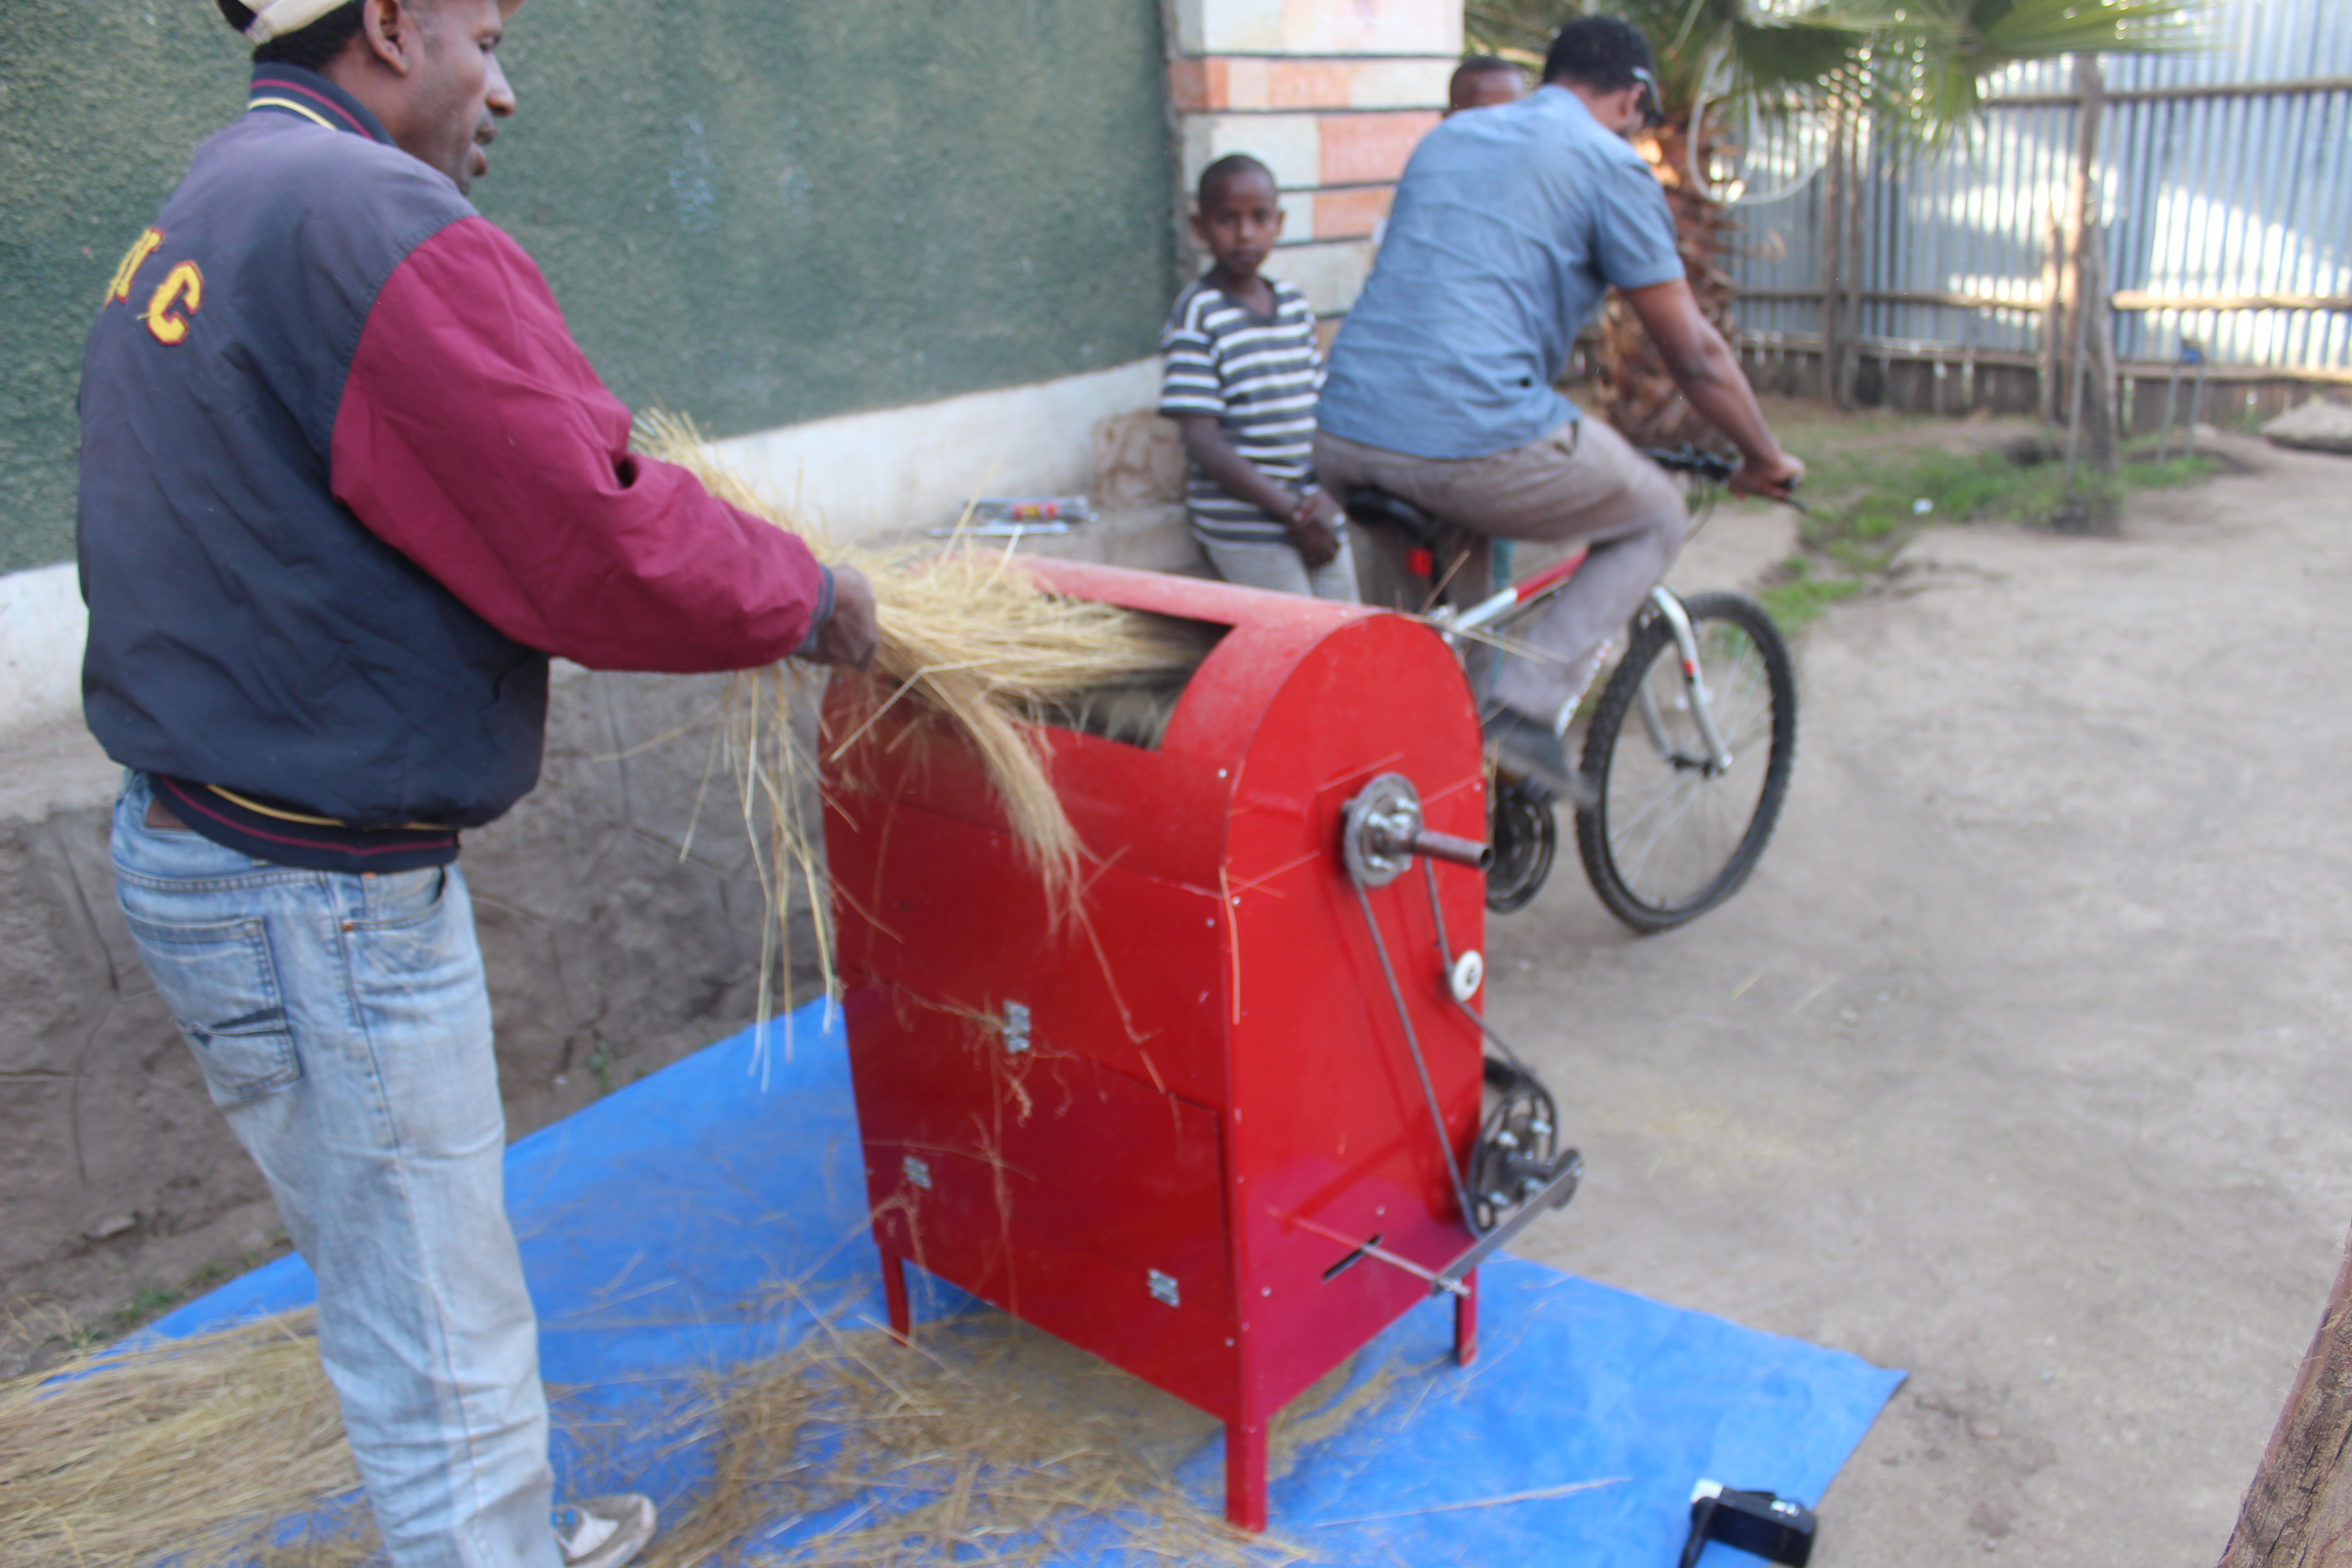 Ethiopians using the first prototype of the threshing machine powered by a bicycle.